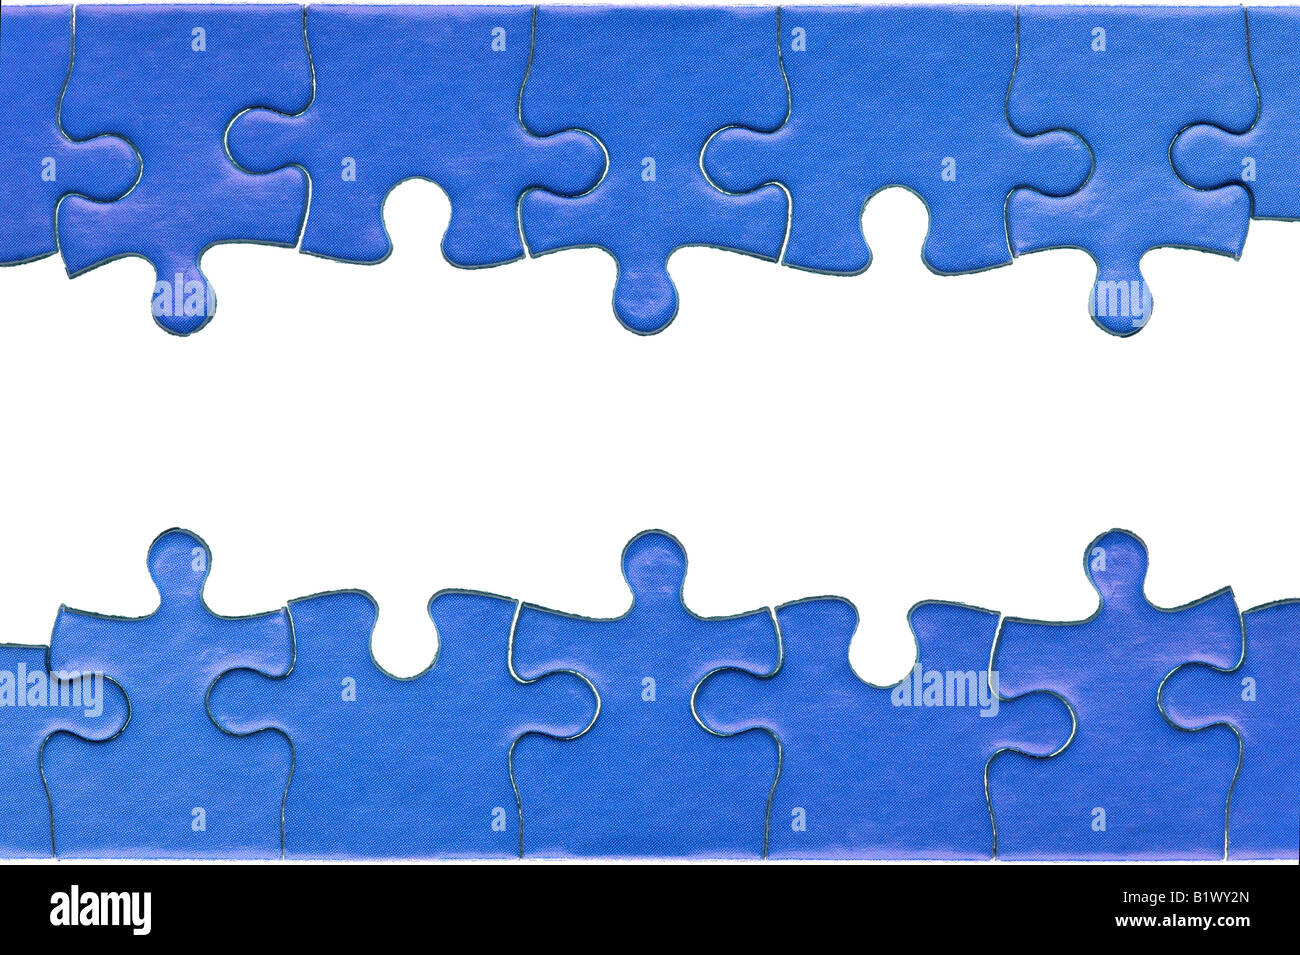 Pieces from a genuine blue jigsaw puzzle arranged to form a page header and footer isolated on a white background - Stock Image